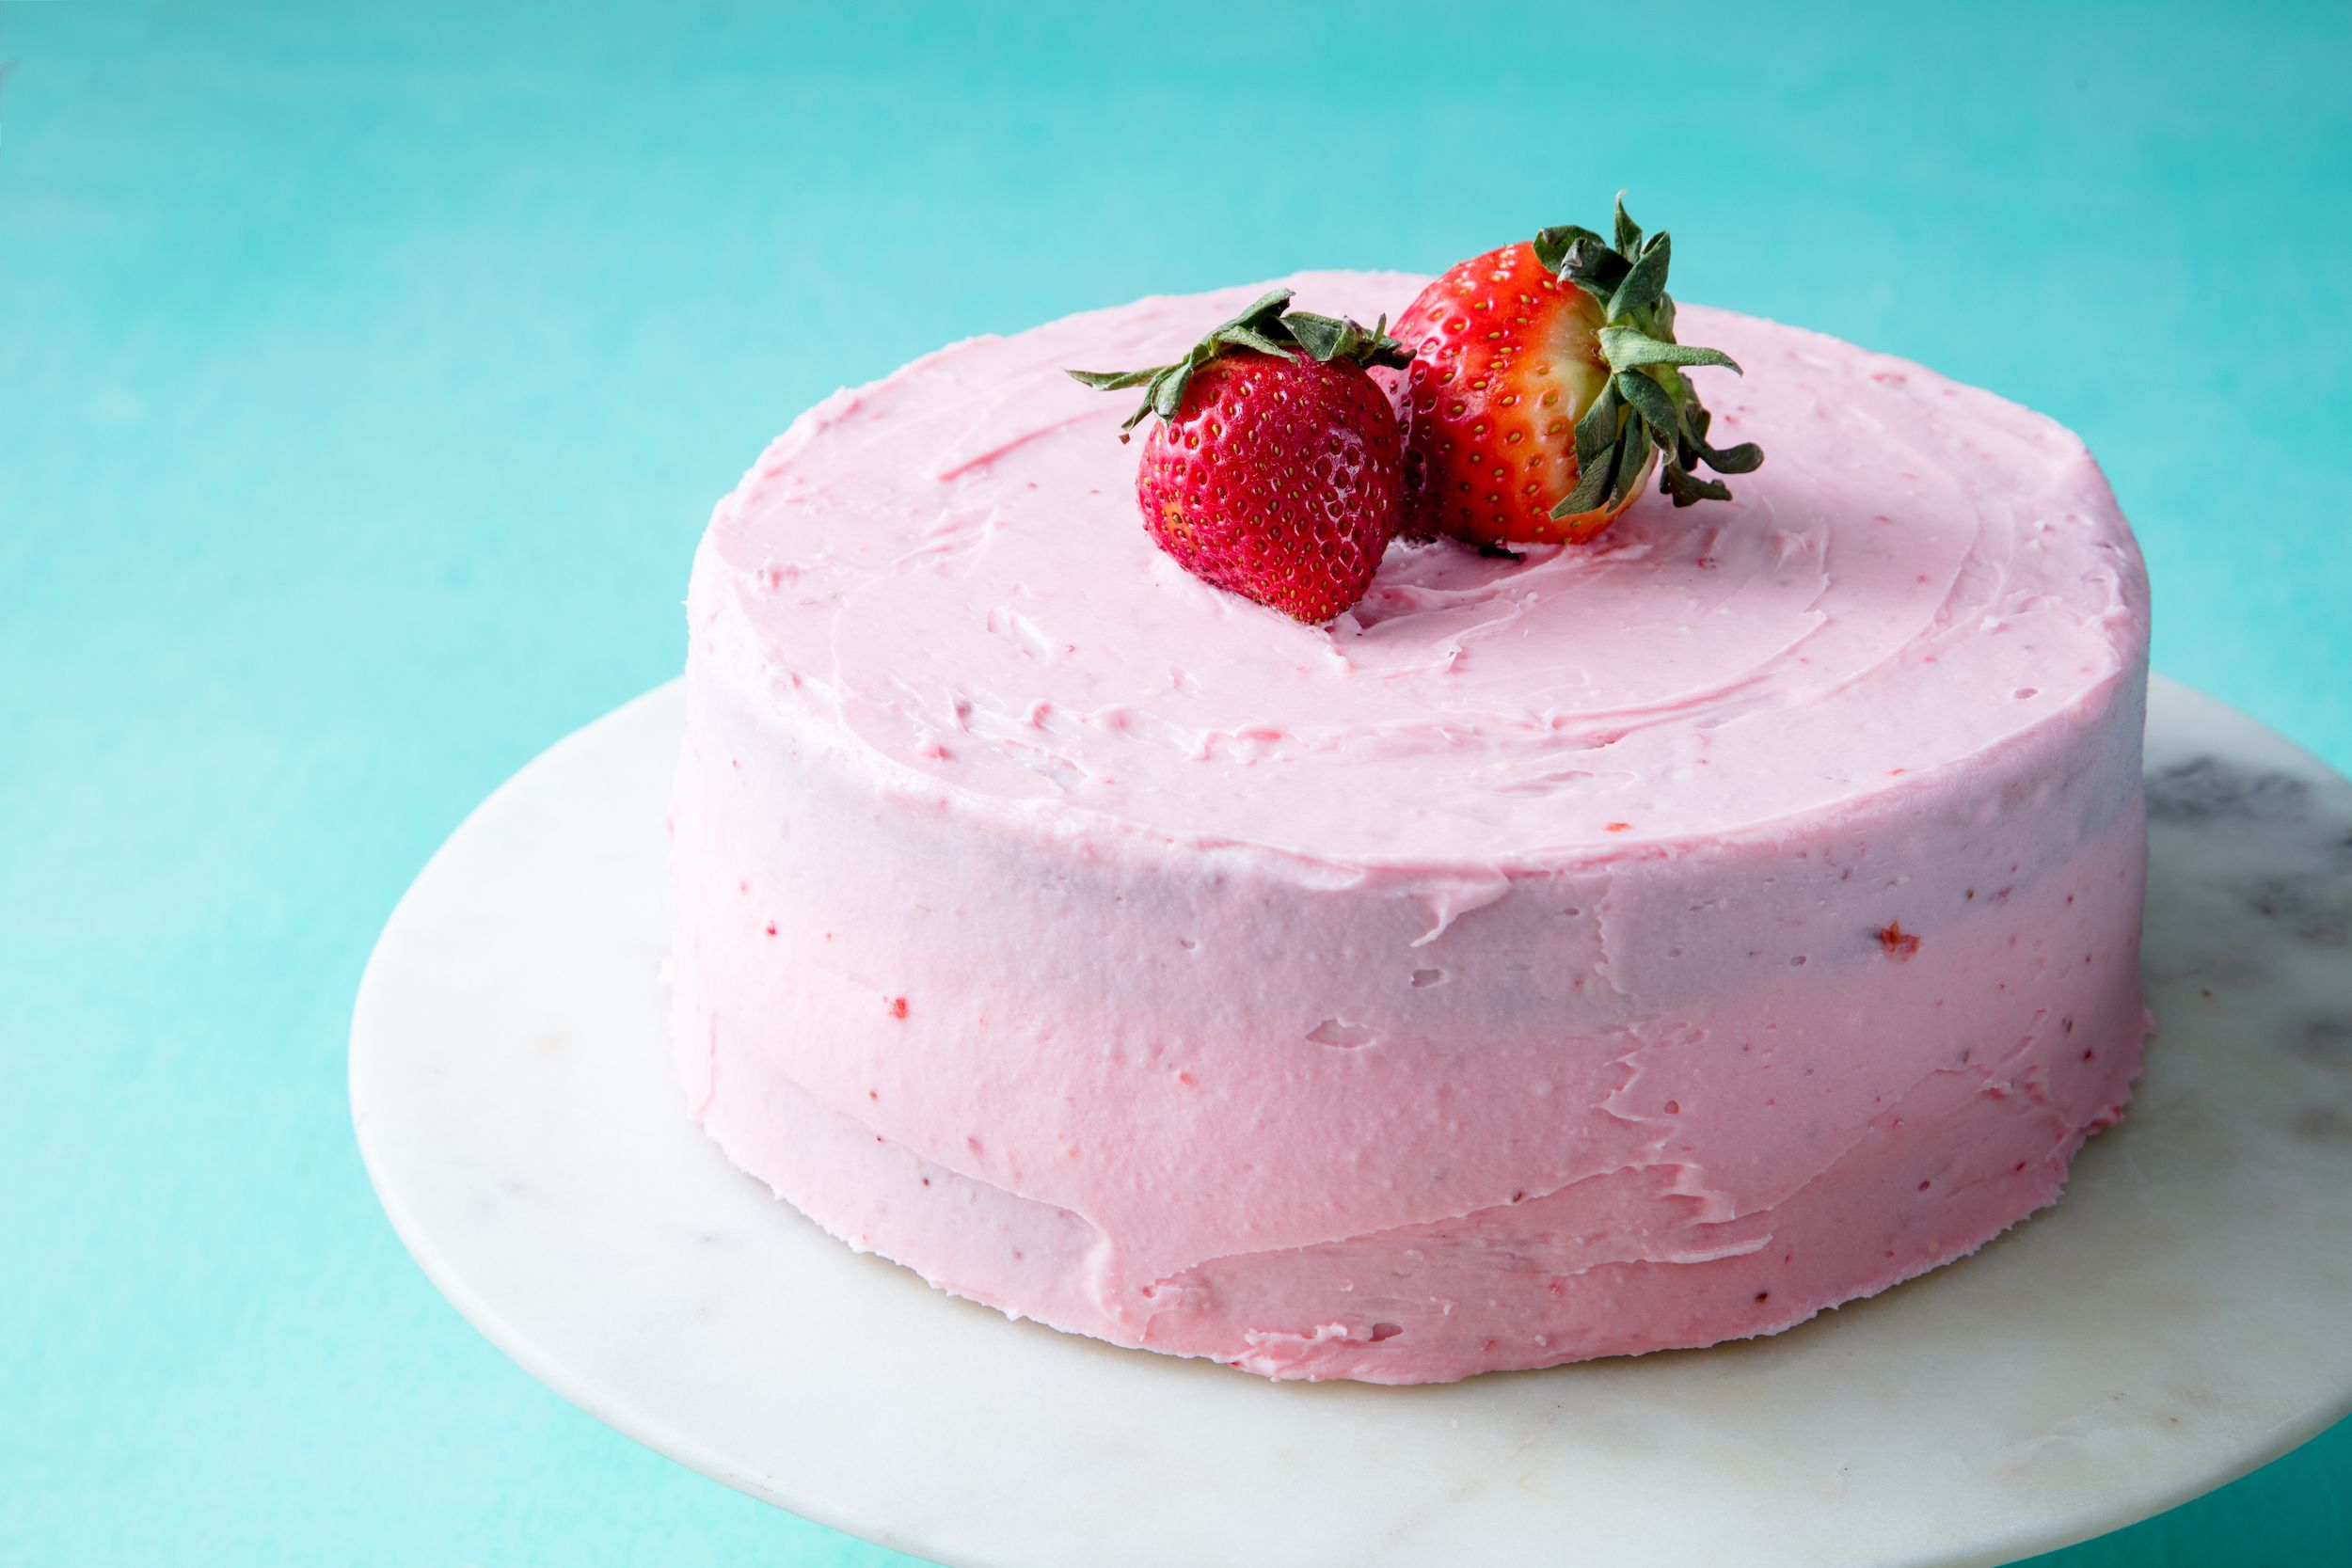 Best Homemade Strawberry Cake Recipe How To Make Homemade